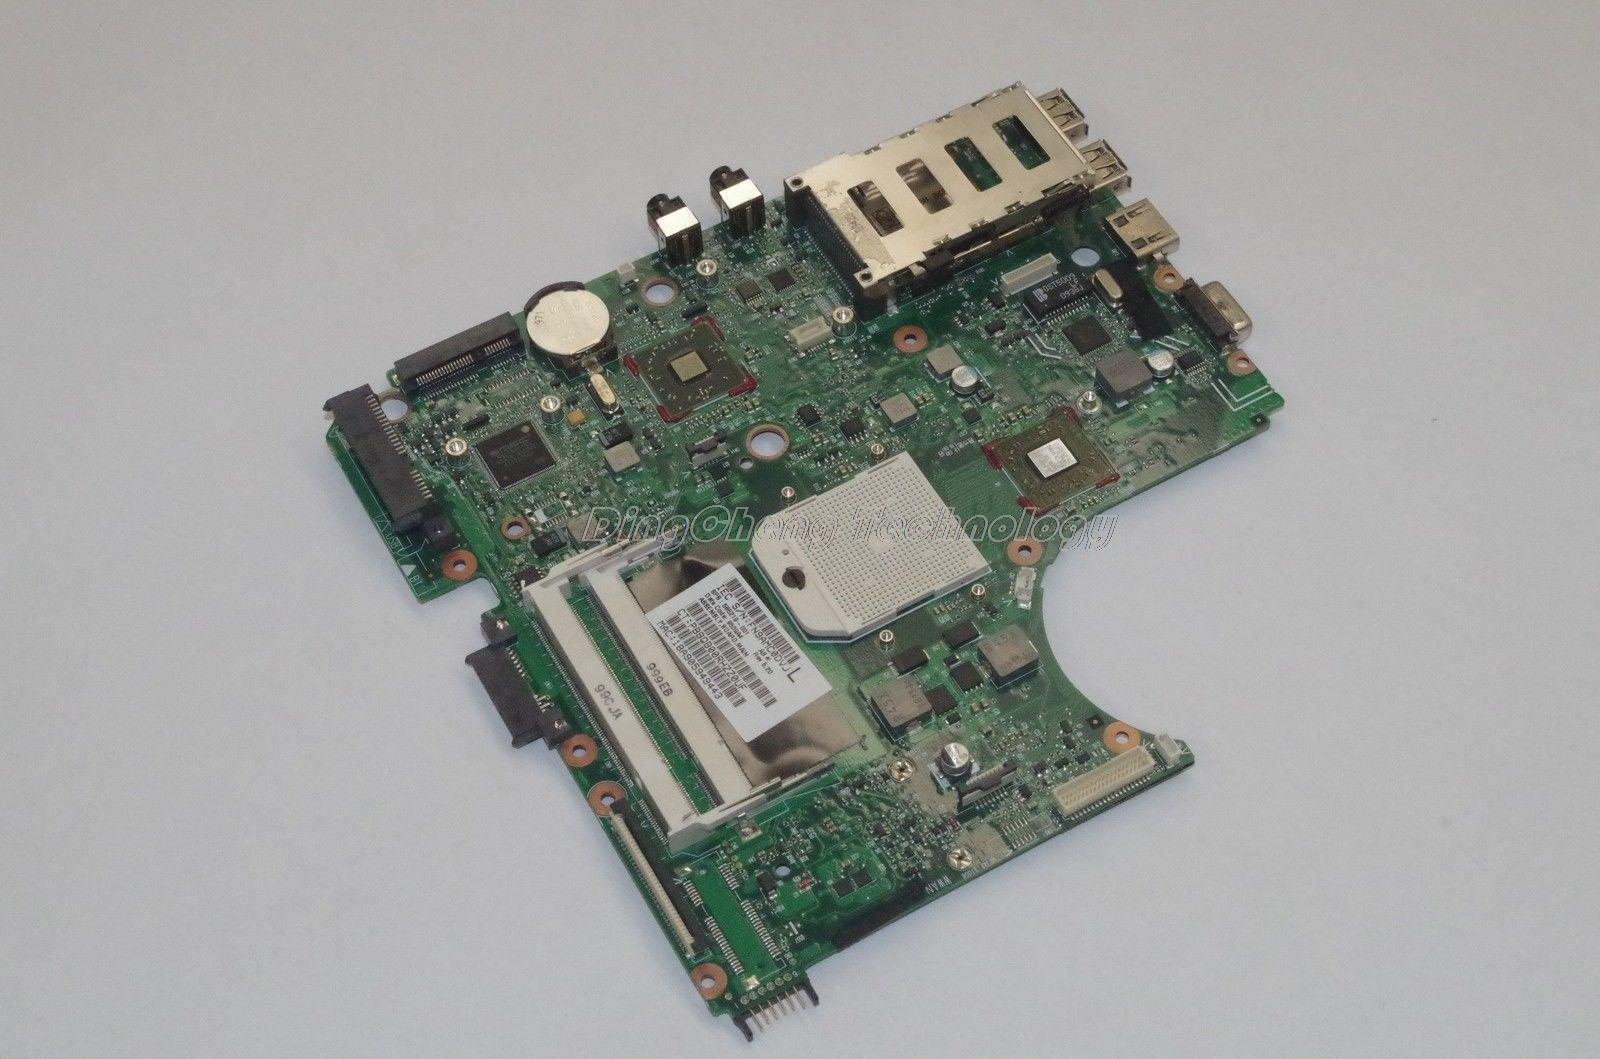 SHELI laptop Motherboard For hp 4515s 4415s 4416s 585219-001 for AMD cpu with integrated graphics card 100% fully tested OK 585221 001 fit for hp probook 4515s 4416s laptop motherboard mainboard 100% tested ok